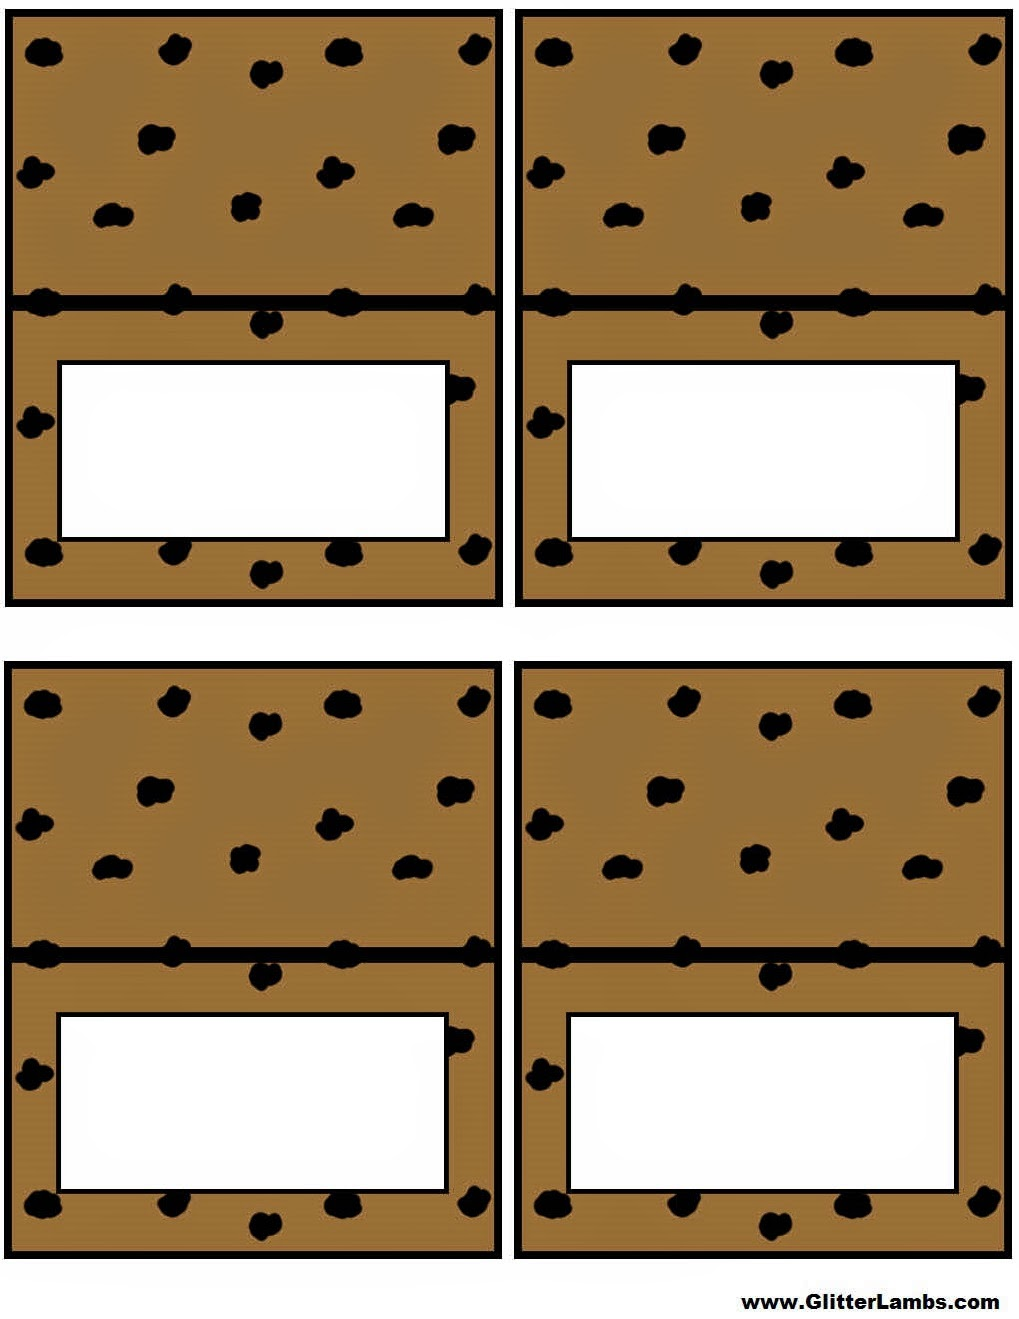 moster templates - glitter lambs cookie monster food label cards and free